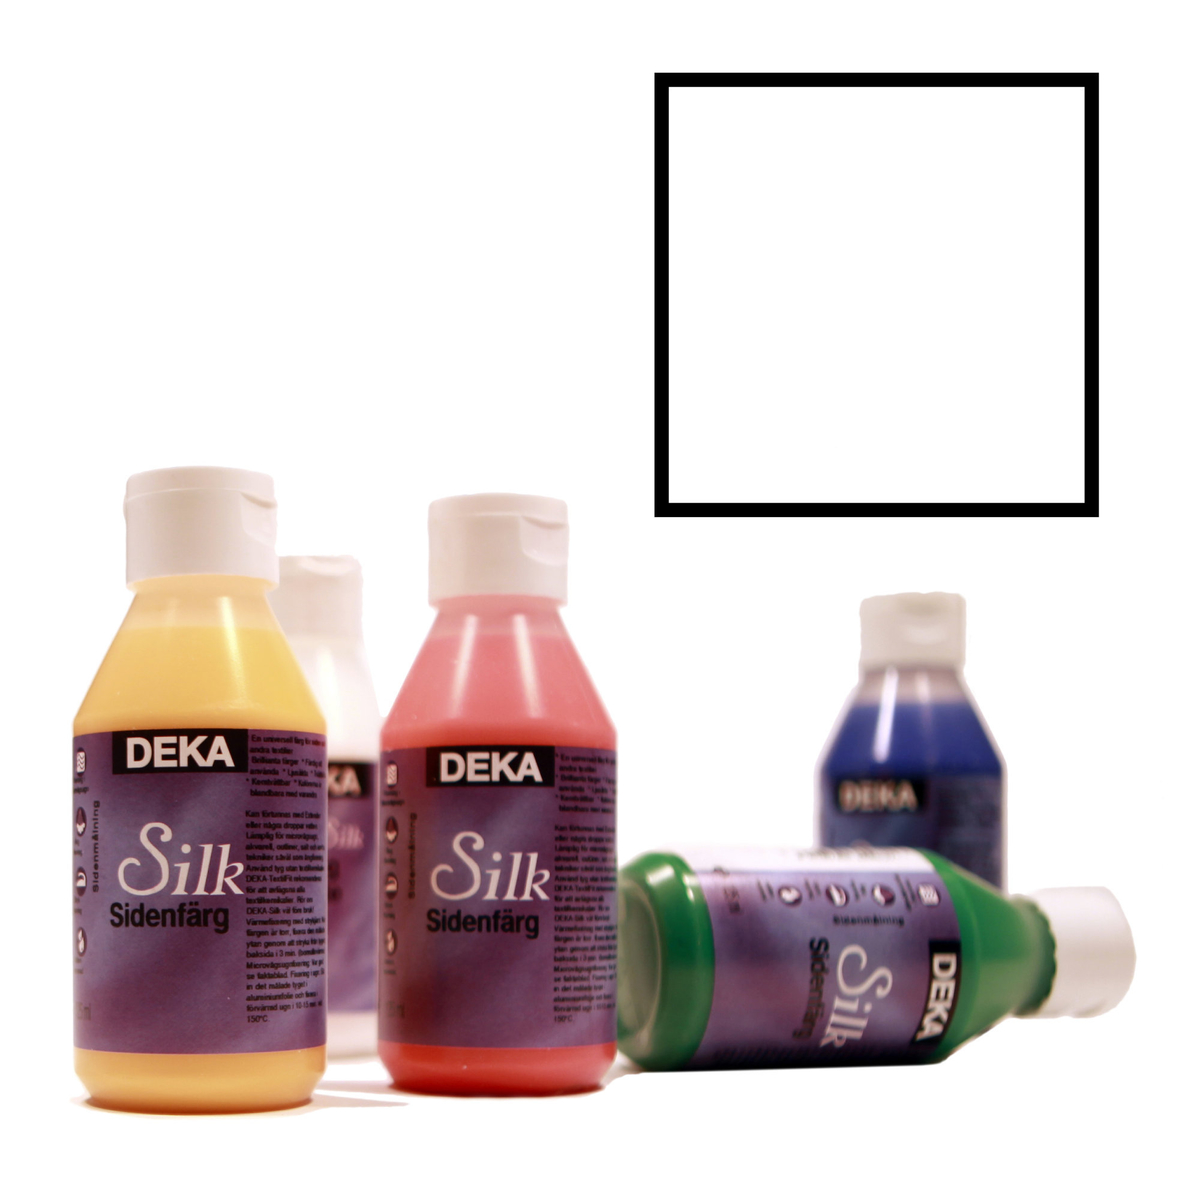 DEKA Silk 125ml Covering Vit